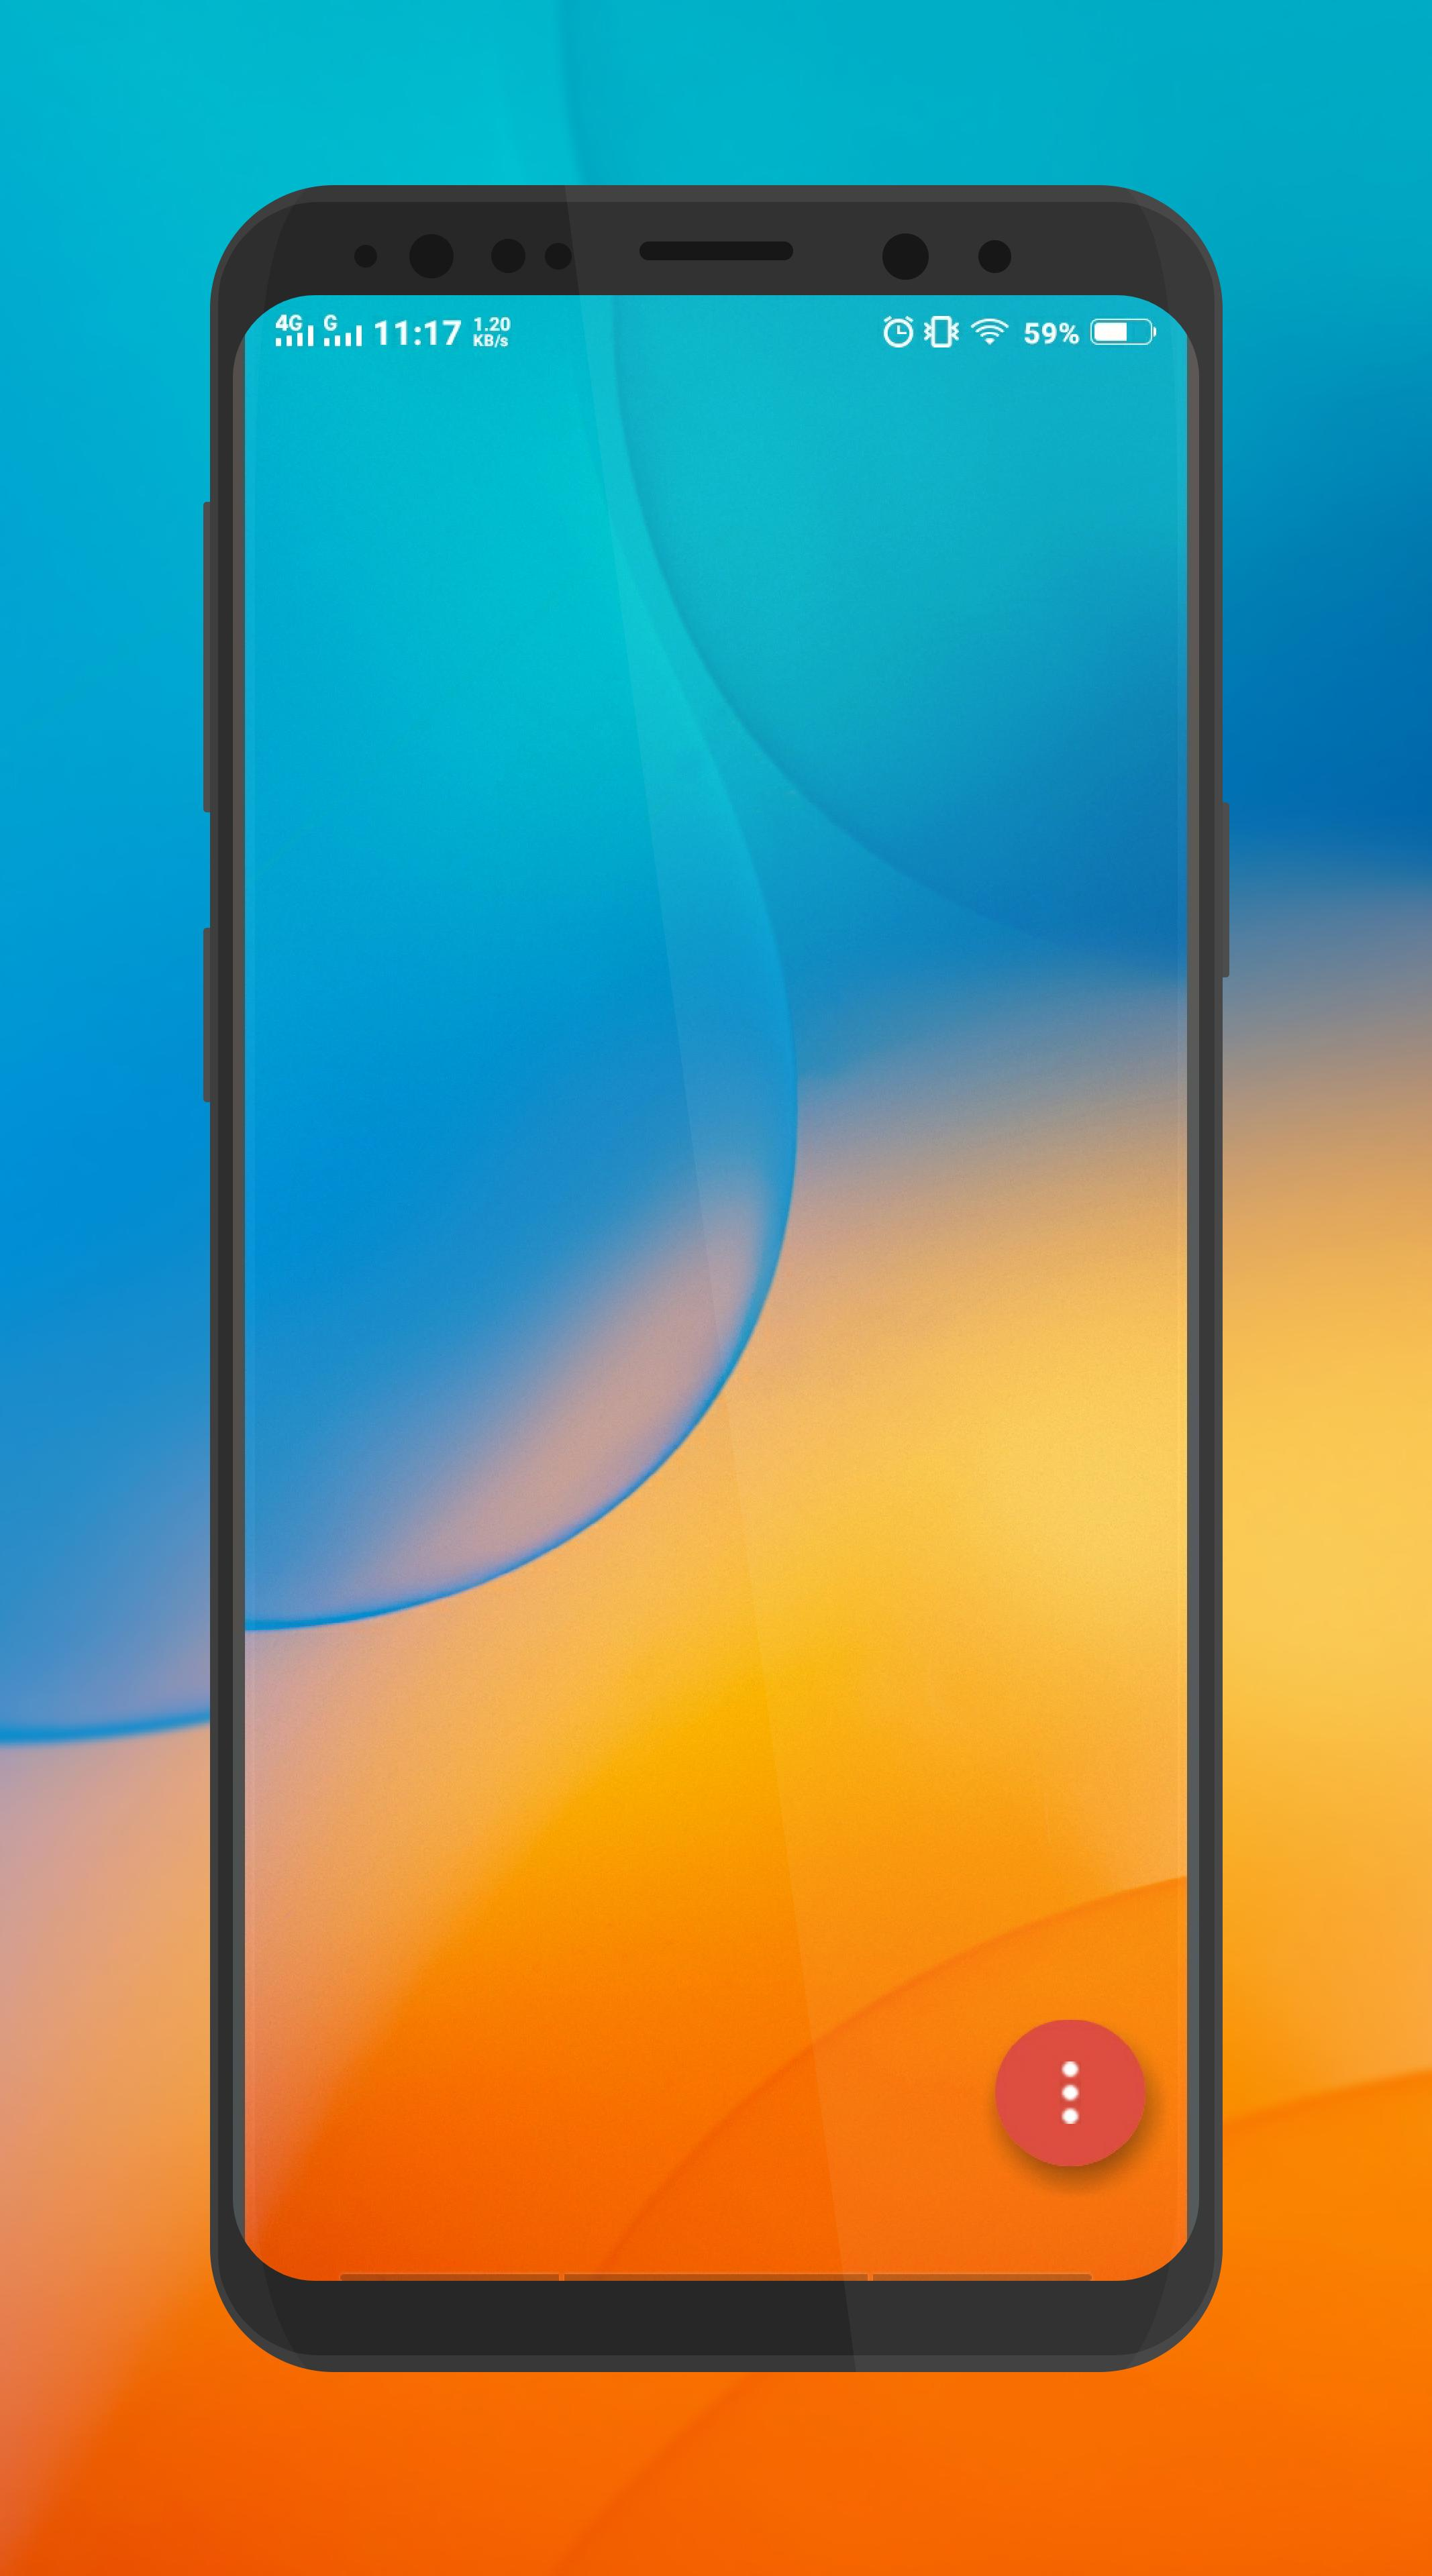 LG G7 - LG G6 Wallpapers and Backgrounds HD for Android